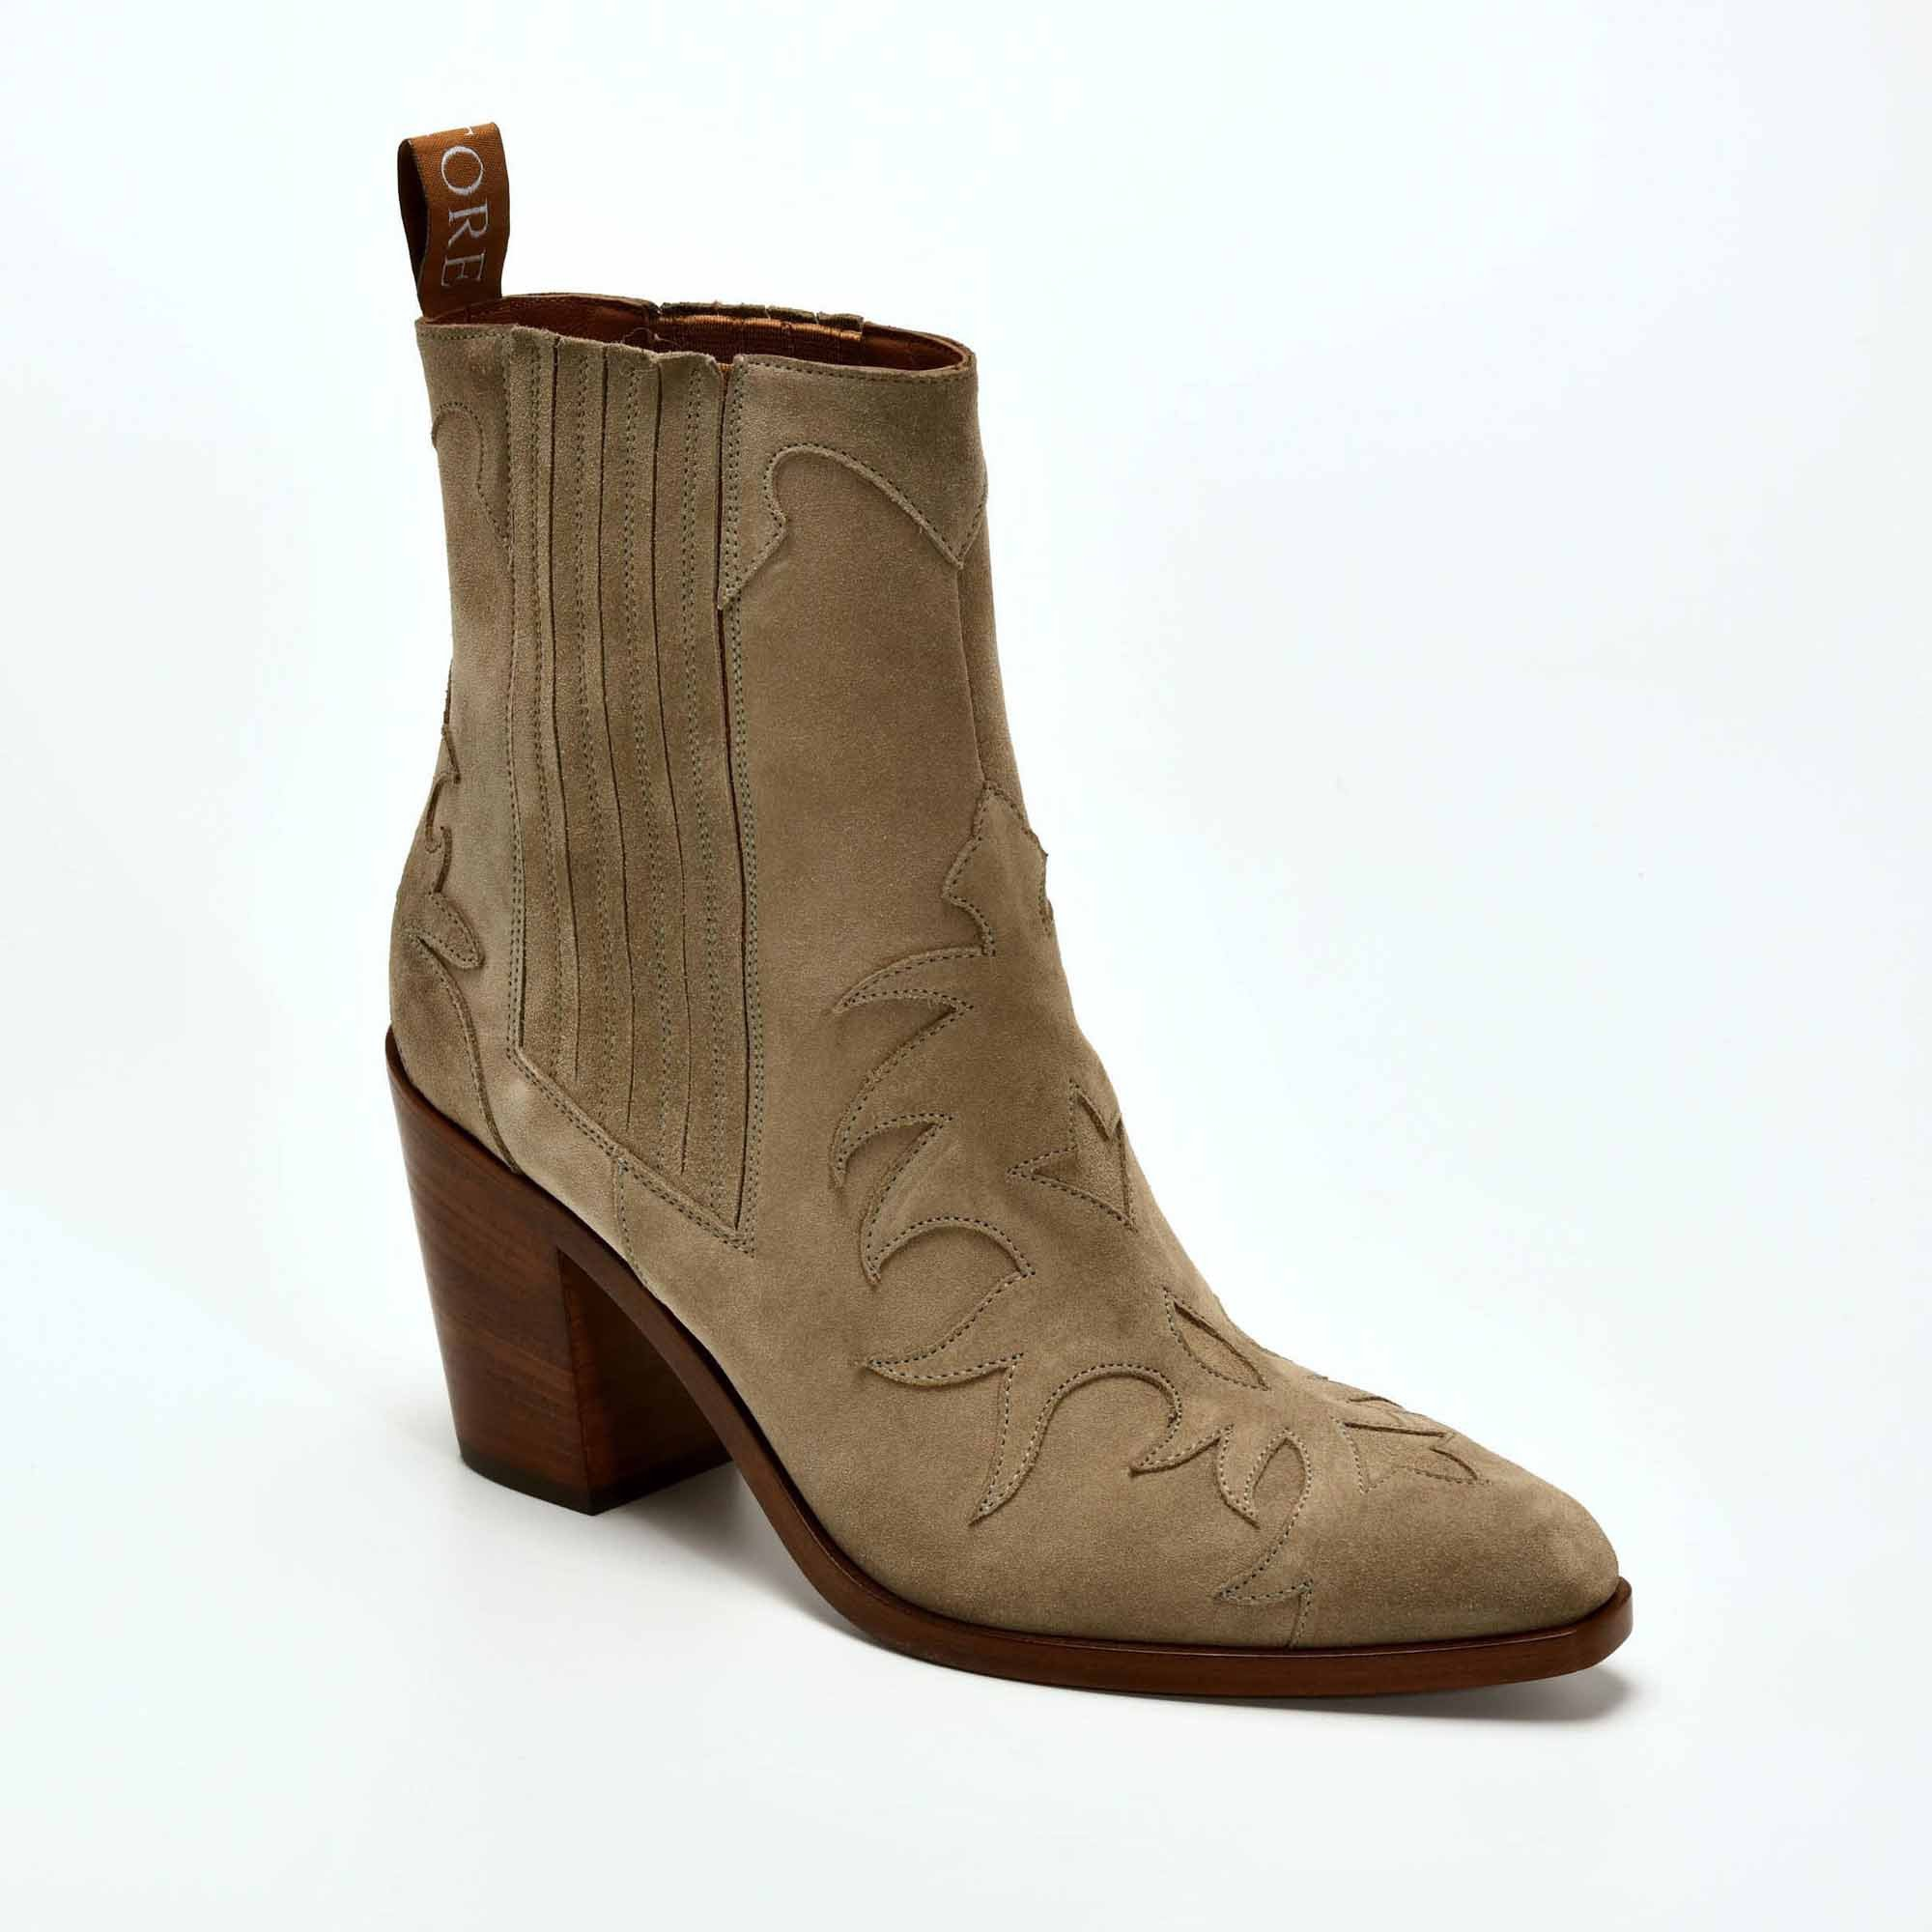 SR3265 BOOTS FLAMMES GRIS TAUPE SARTORE